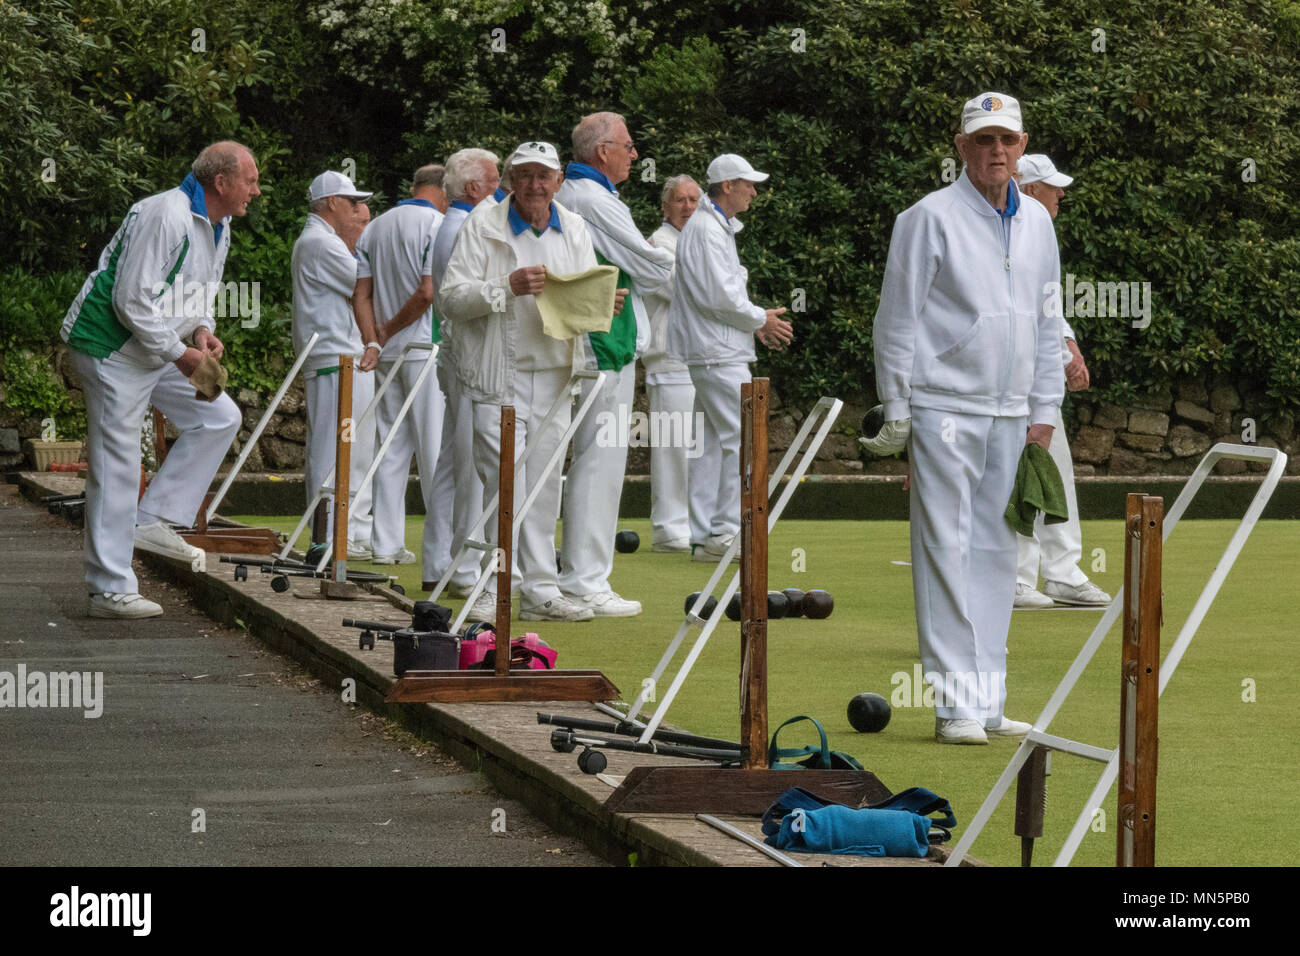 a number of elderly retired gentlemen playing lawn bowls on a bowling green dressed in whites. - Stock Image